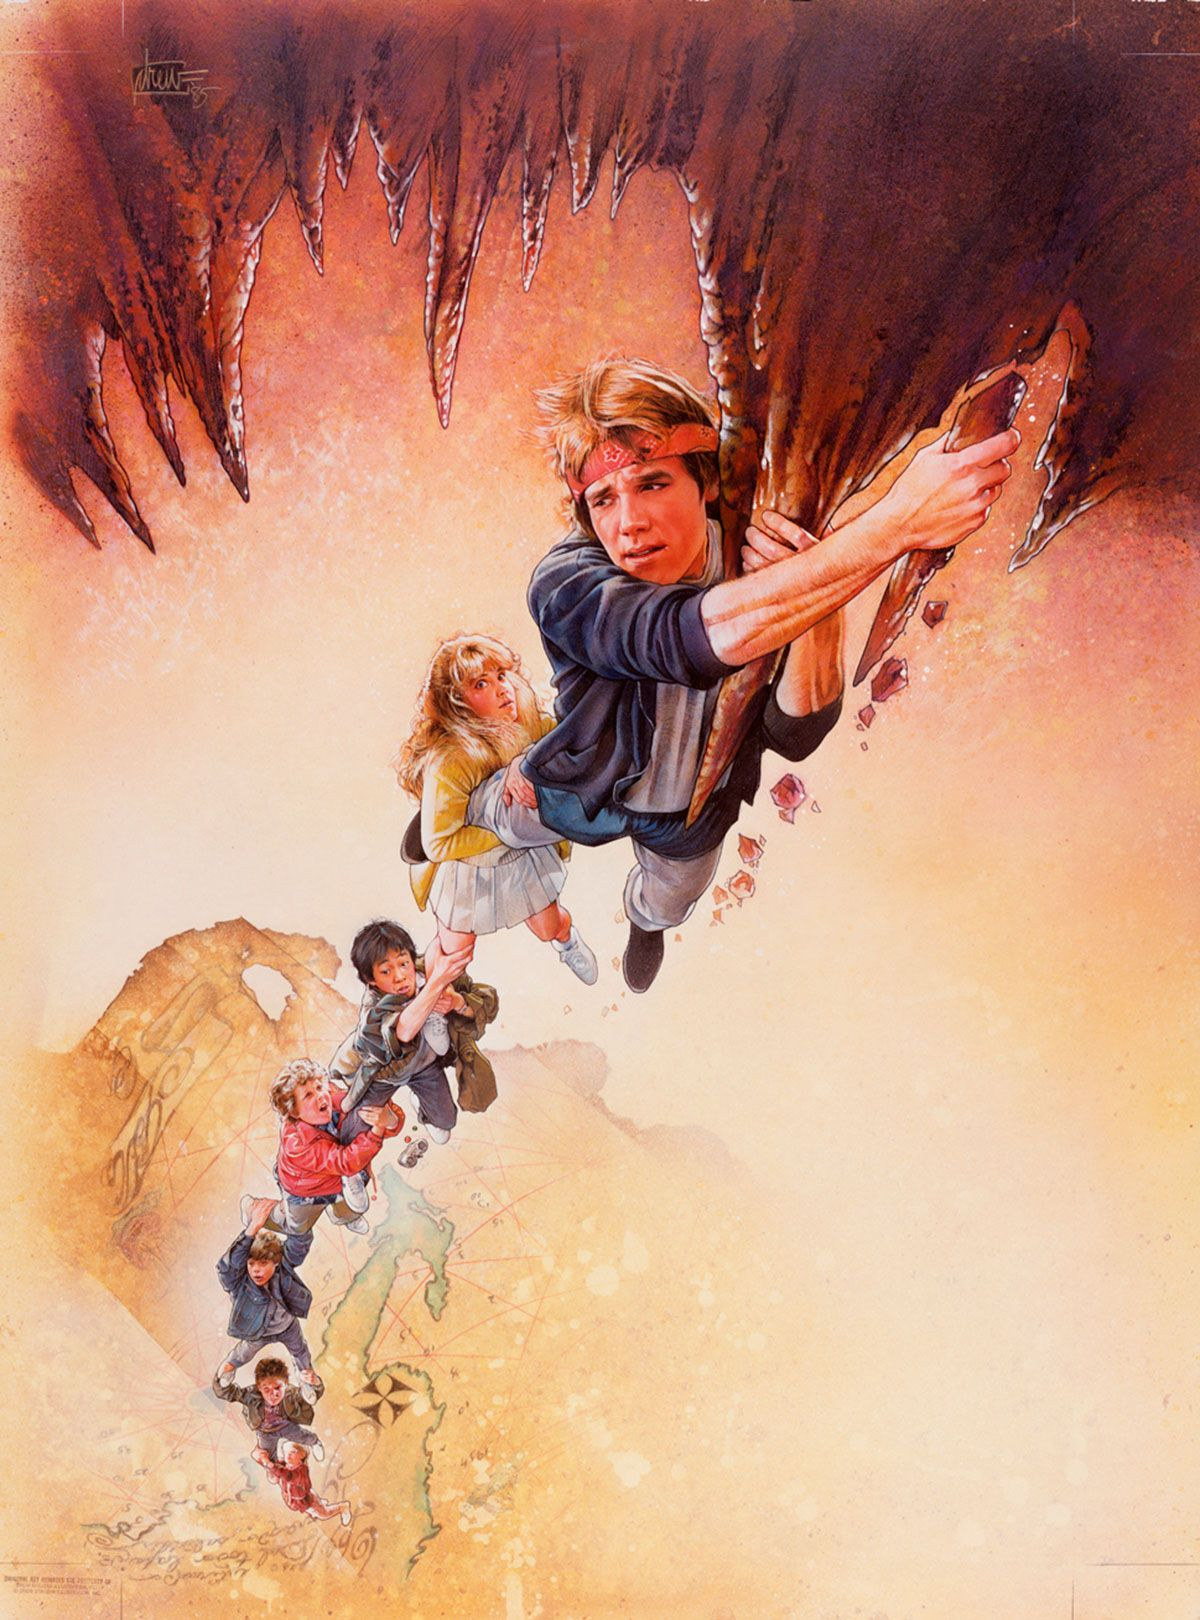 "Goonies, The  Medium: Acrylic paints & colored pencils on gessoed board Size: 30x40 inches Year 1985 In the decades following its release, The Goonies has gained a cult following primarily comprising people who were children or teens in the 1980s. Signed upper left corner ""drew '85"" © Copyright Warner Borthers Inc. 1985"